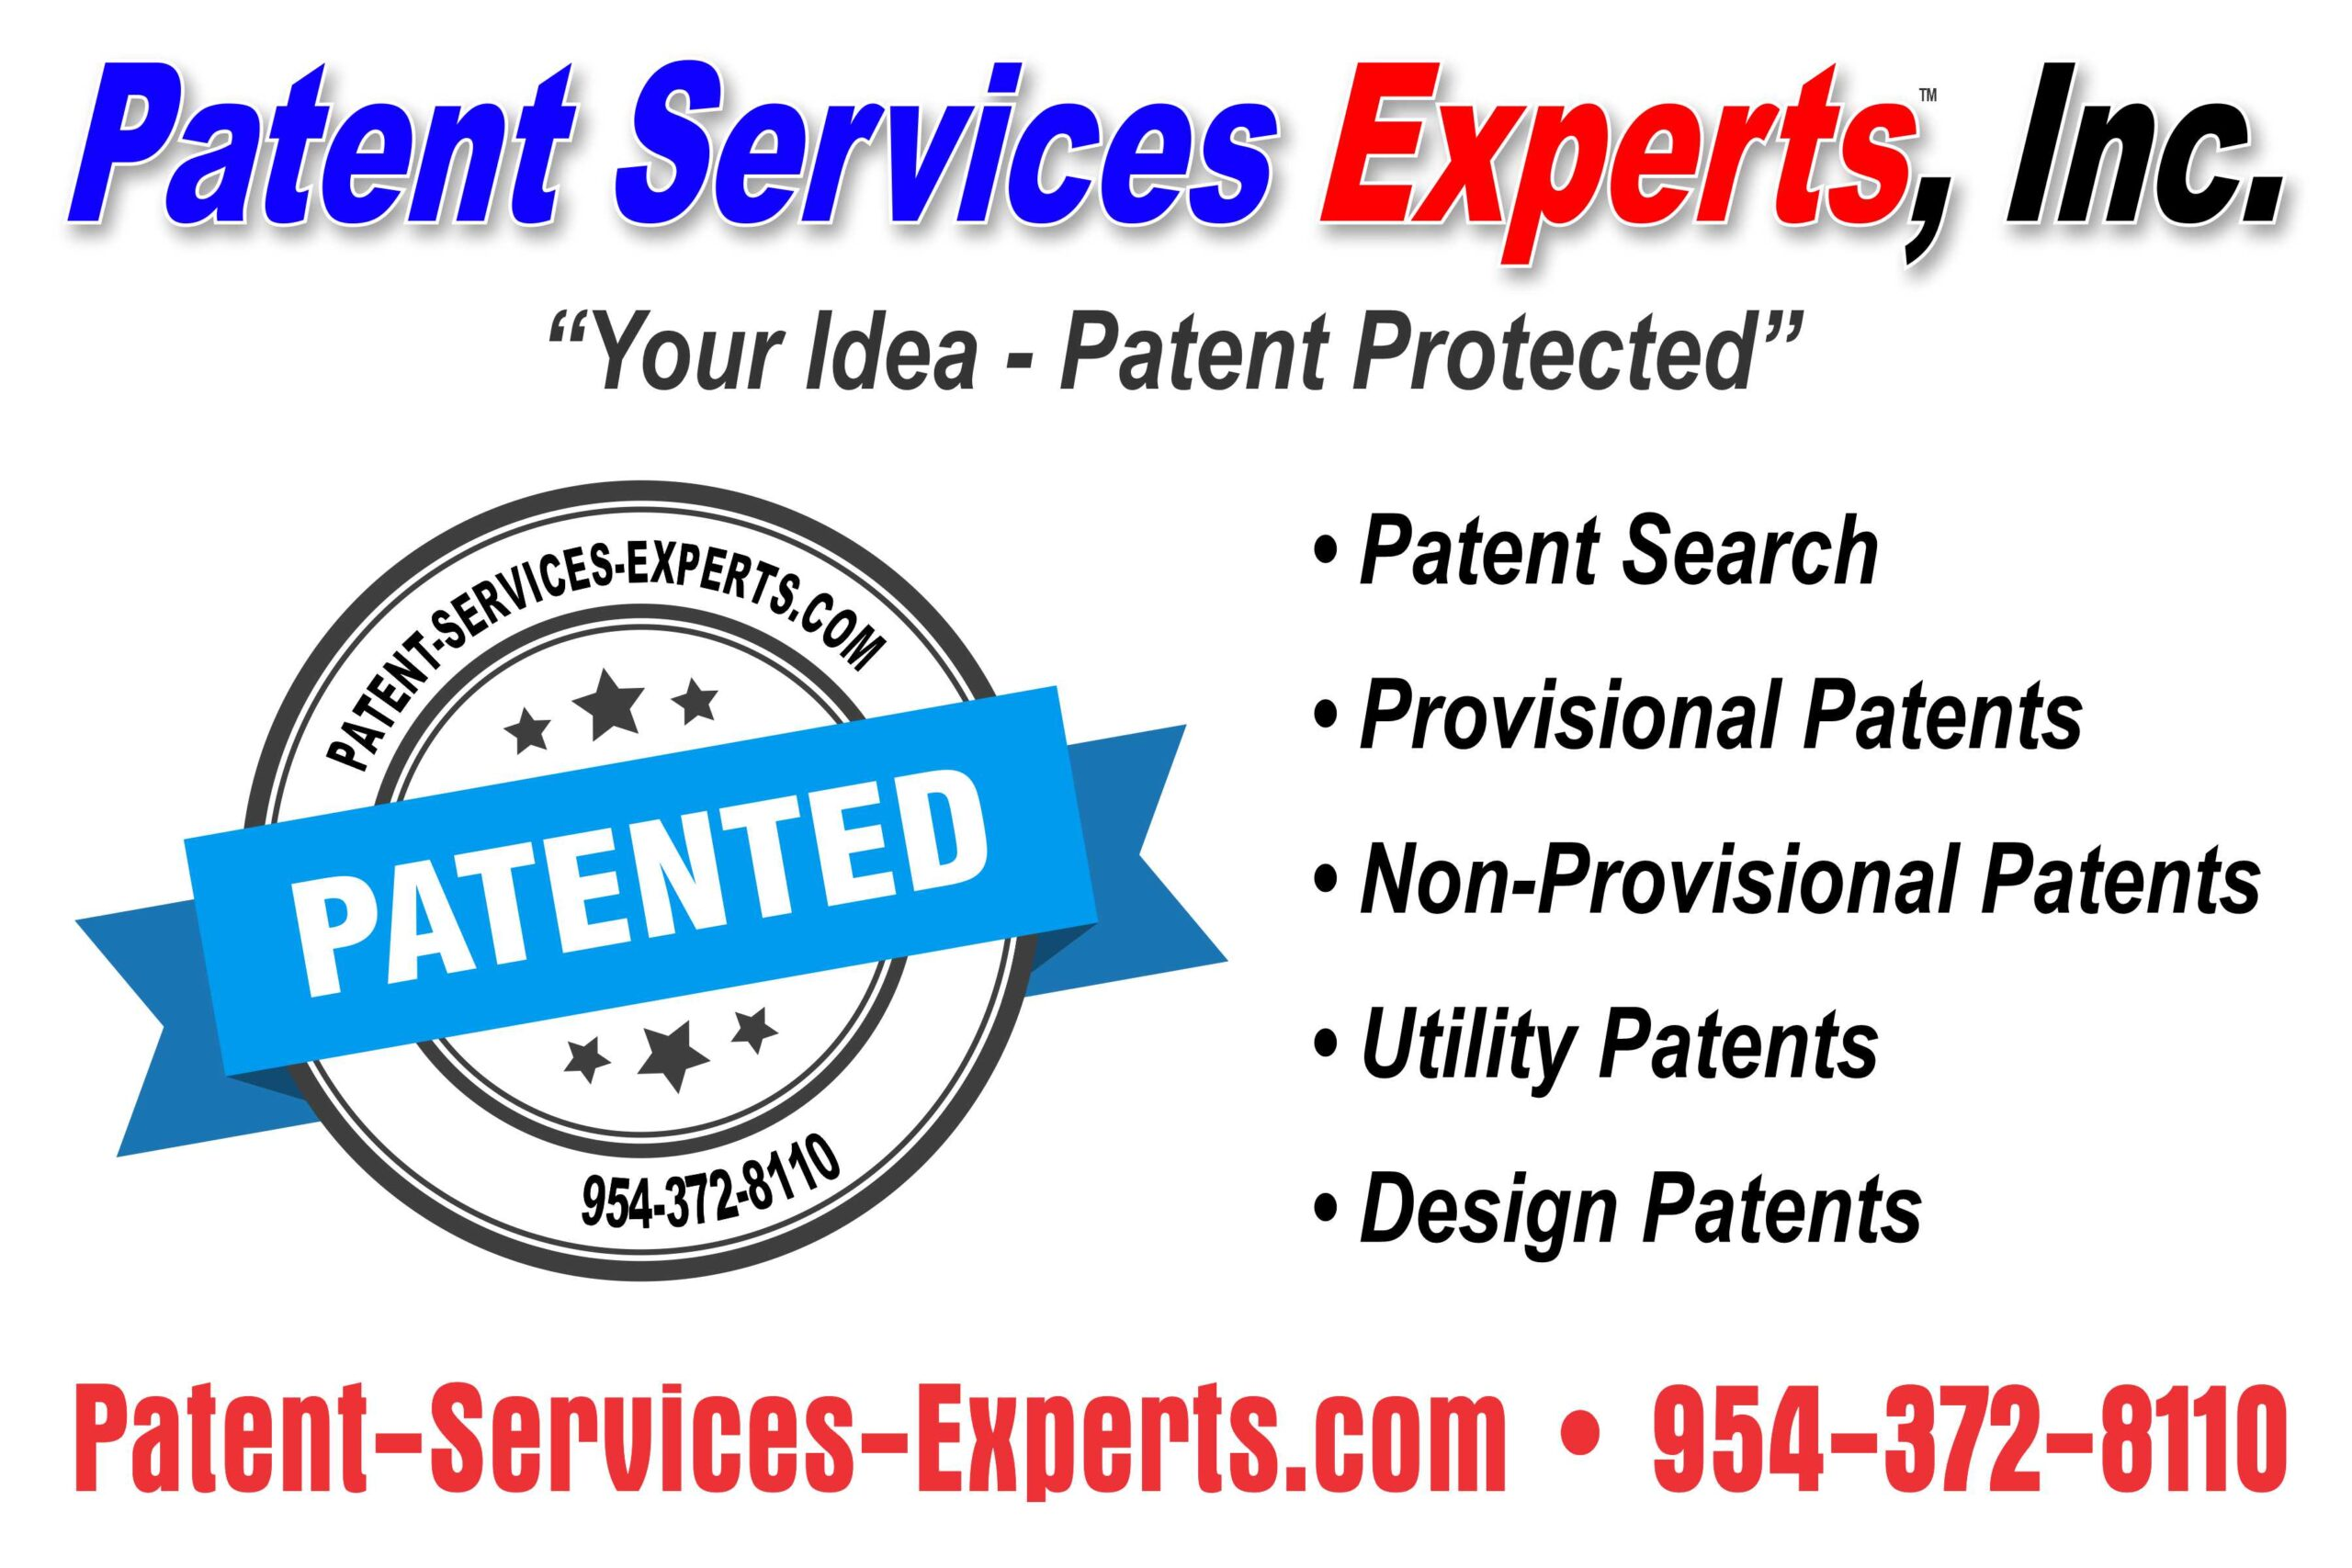 Monterey Patent Attorney Services pic